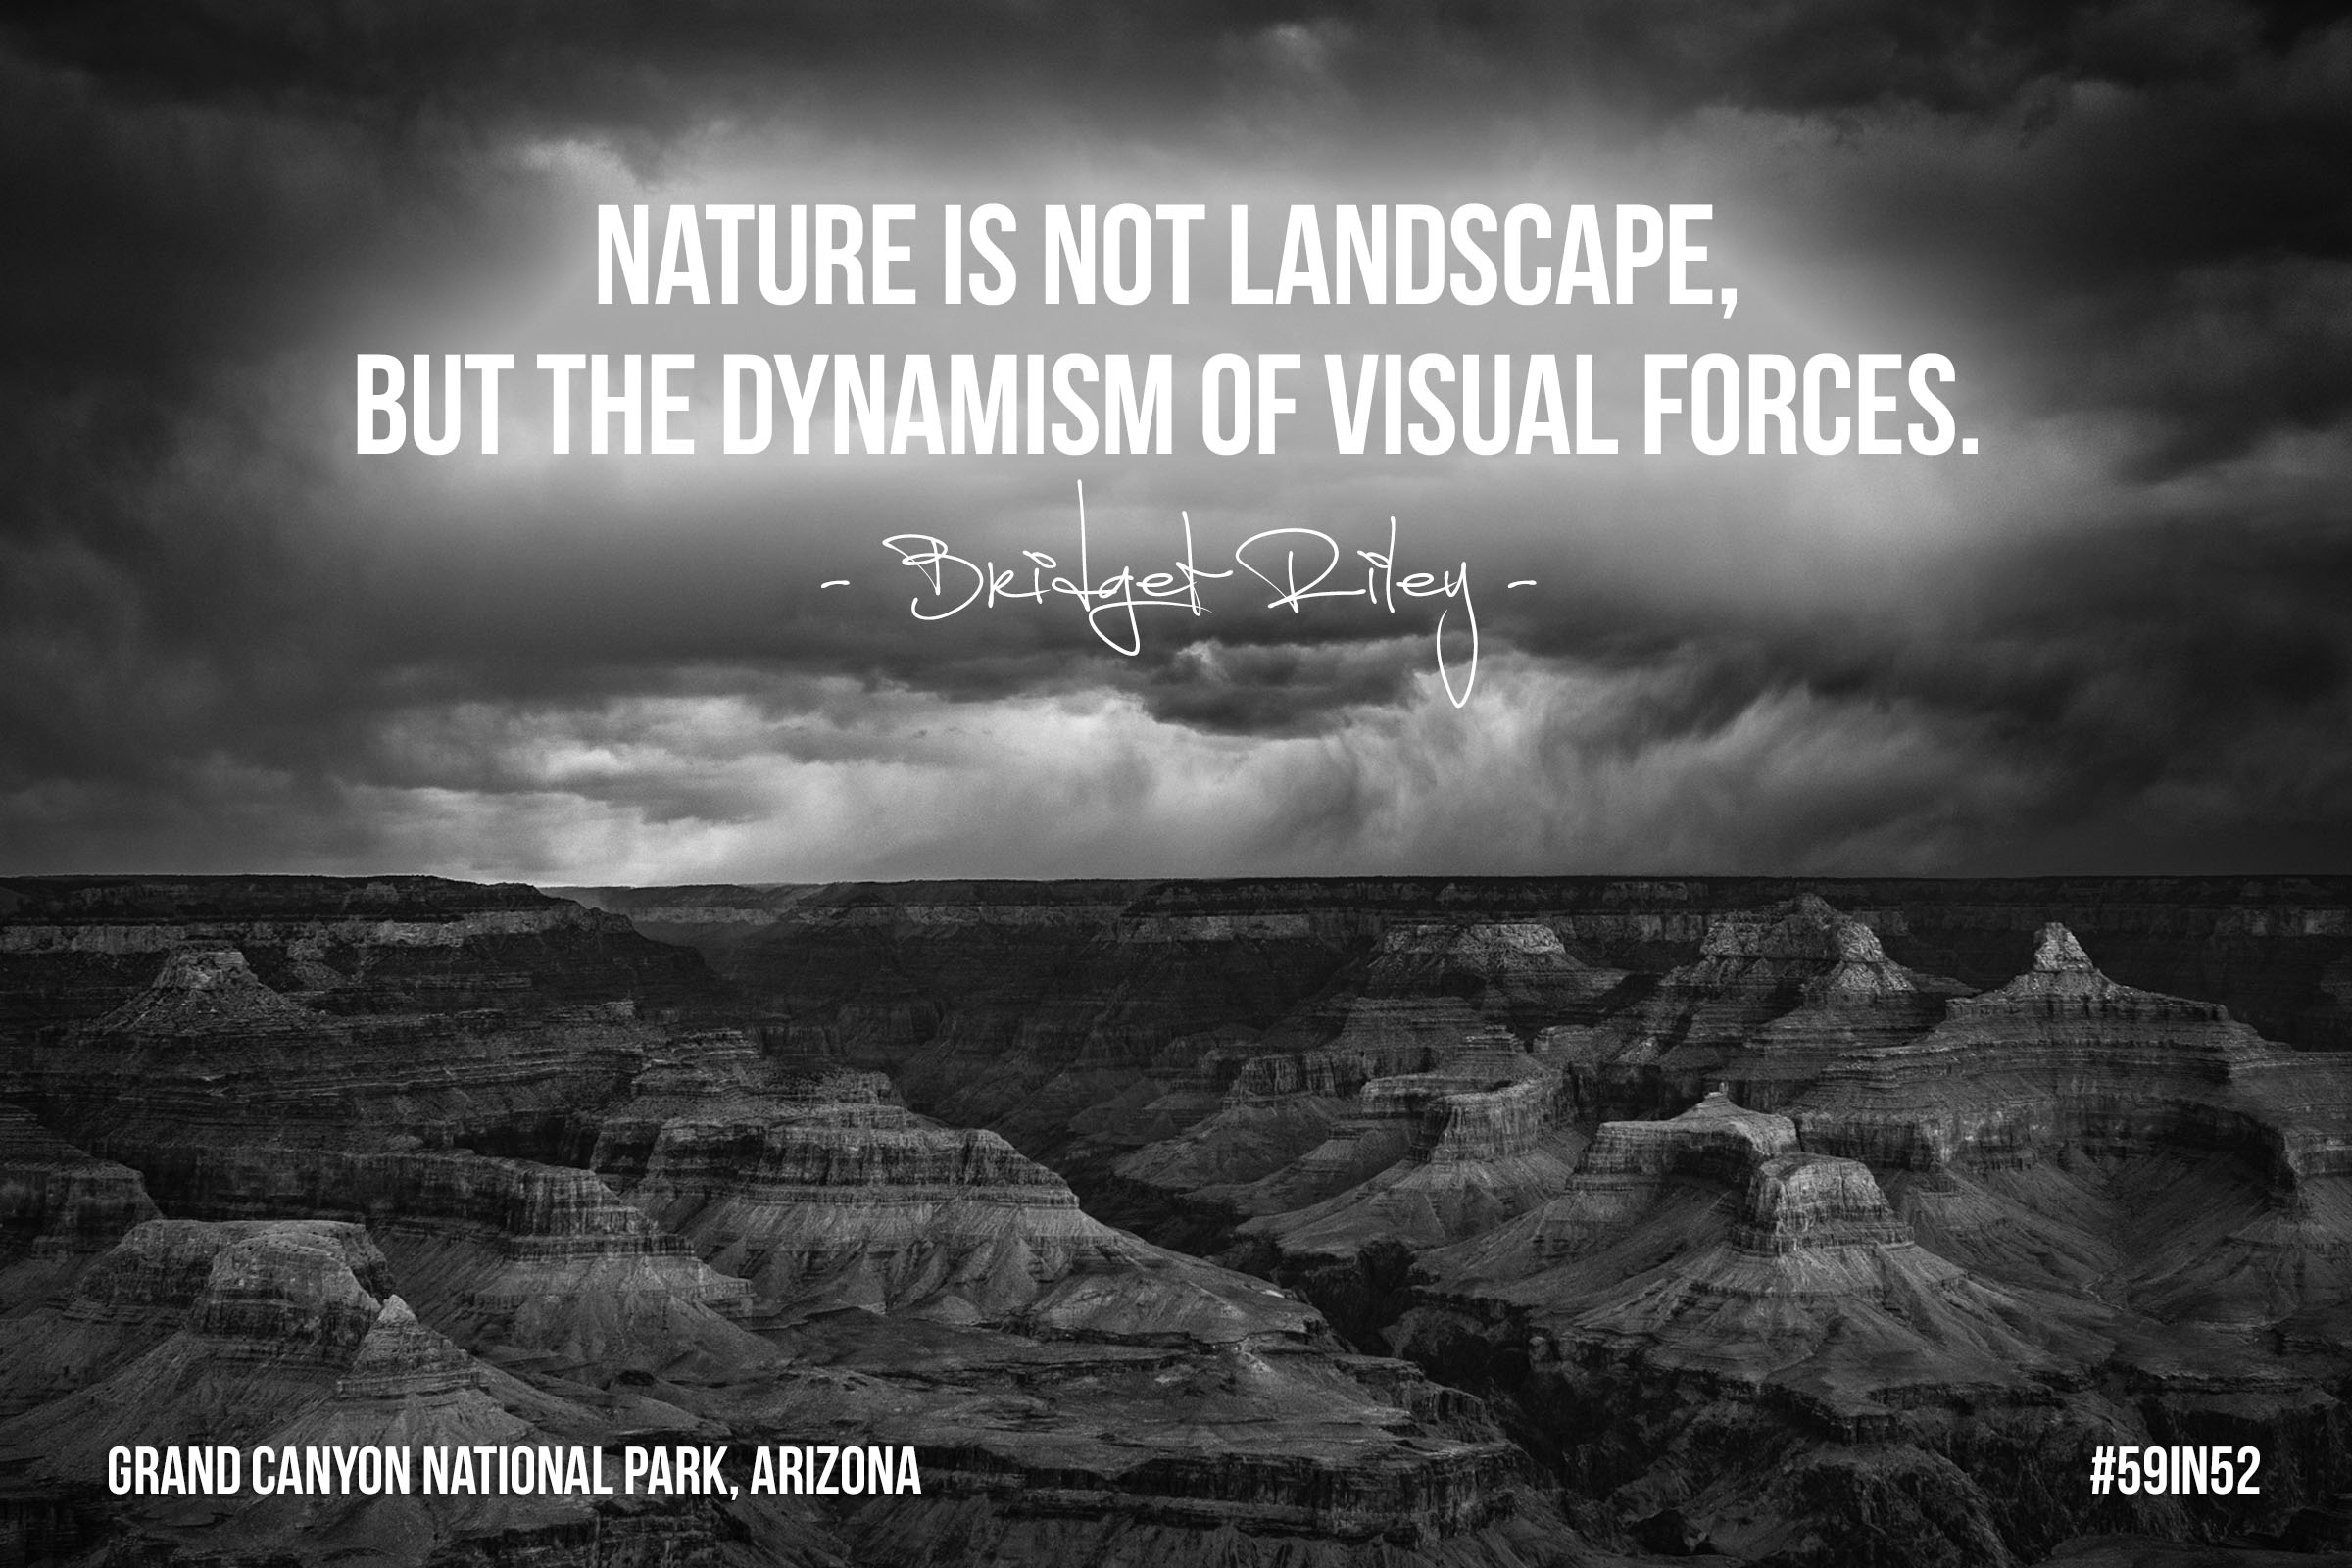 'Nature is not landscape, but the dynamism of visual forces.' - Bridget Riley